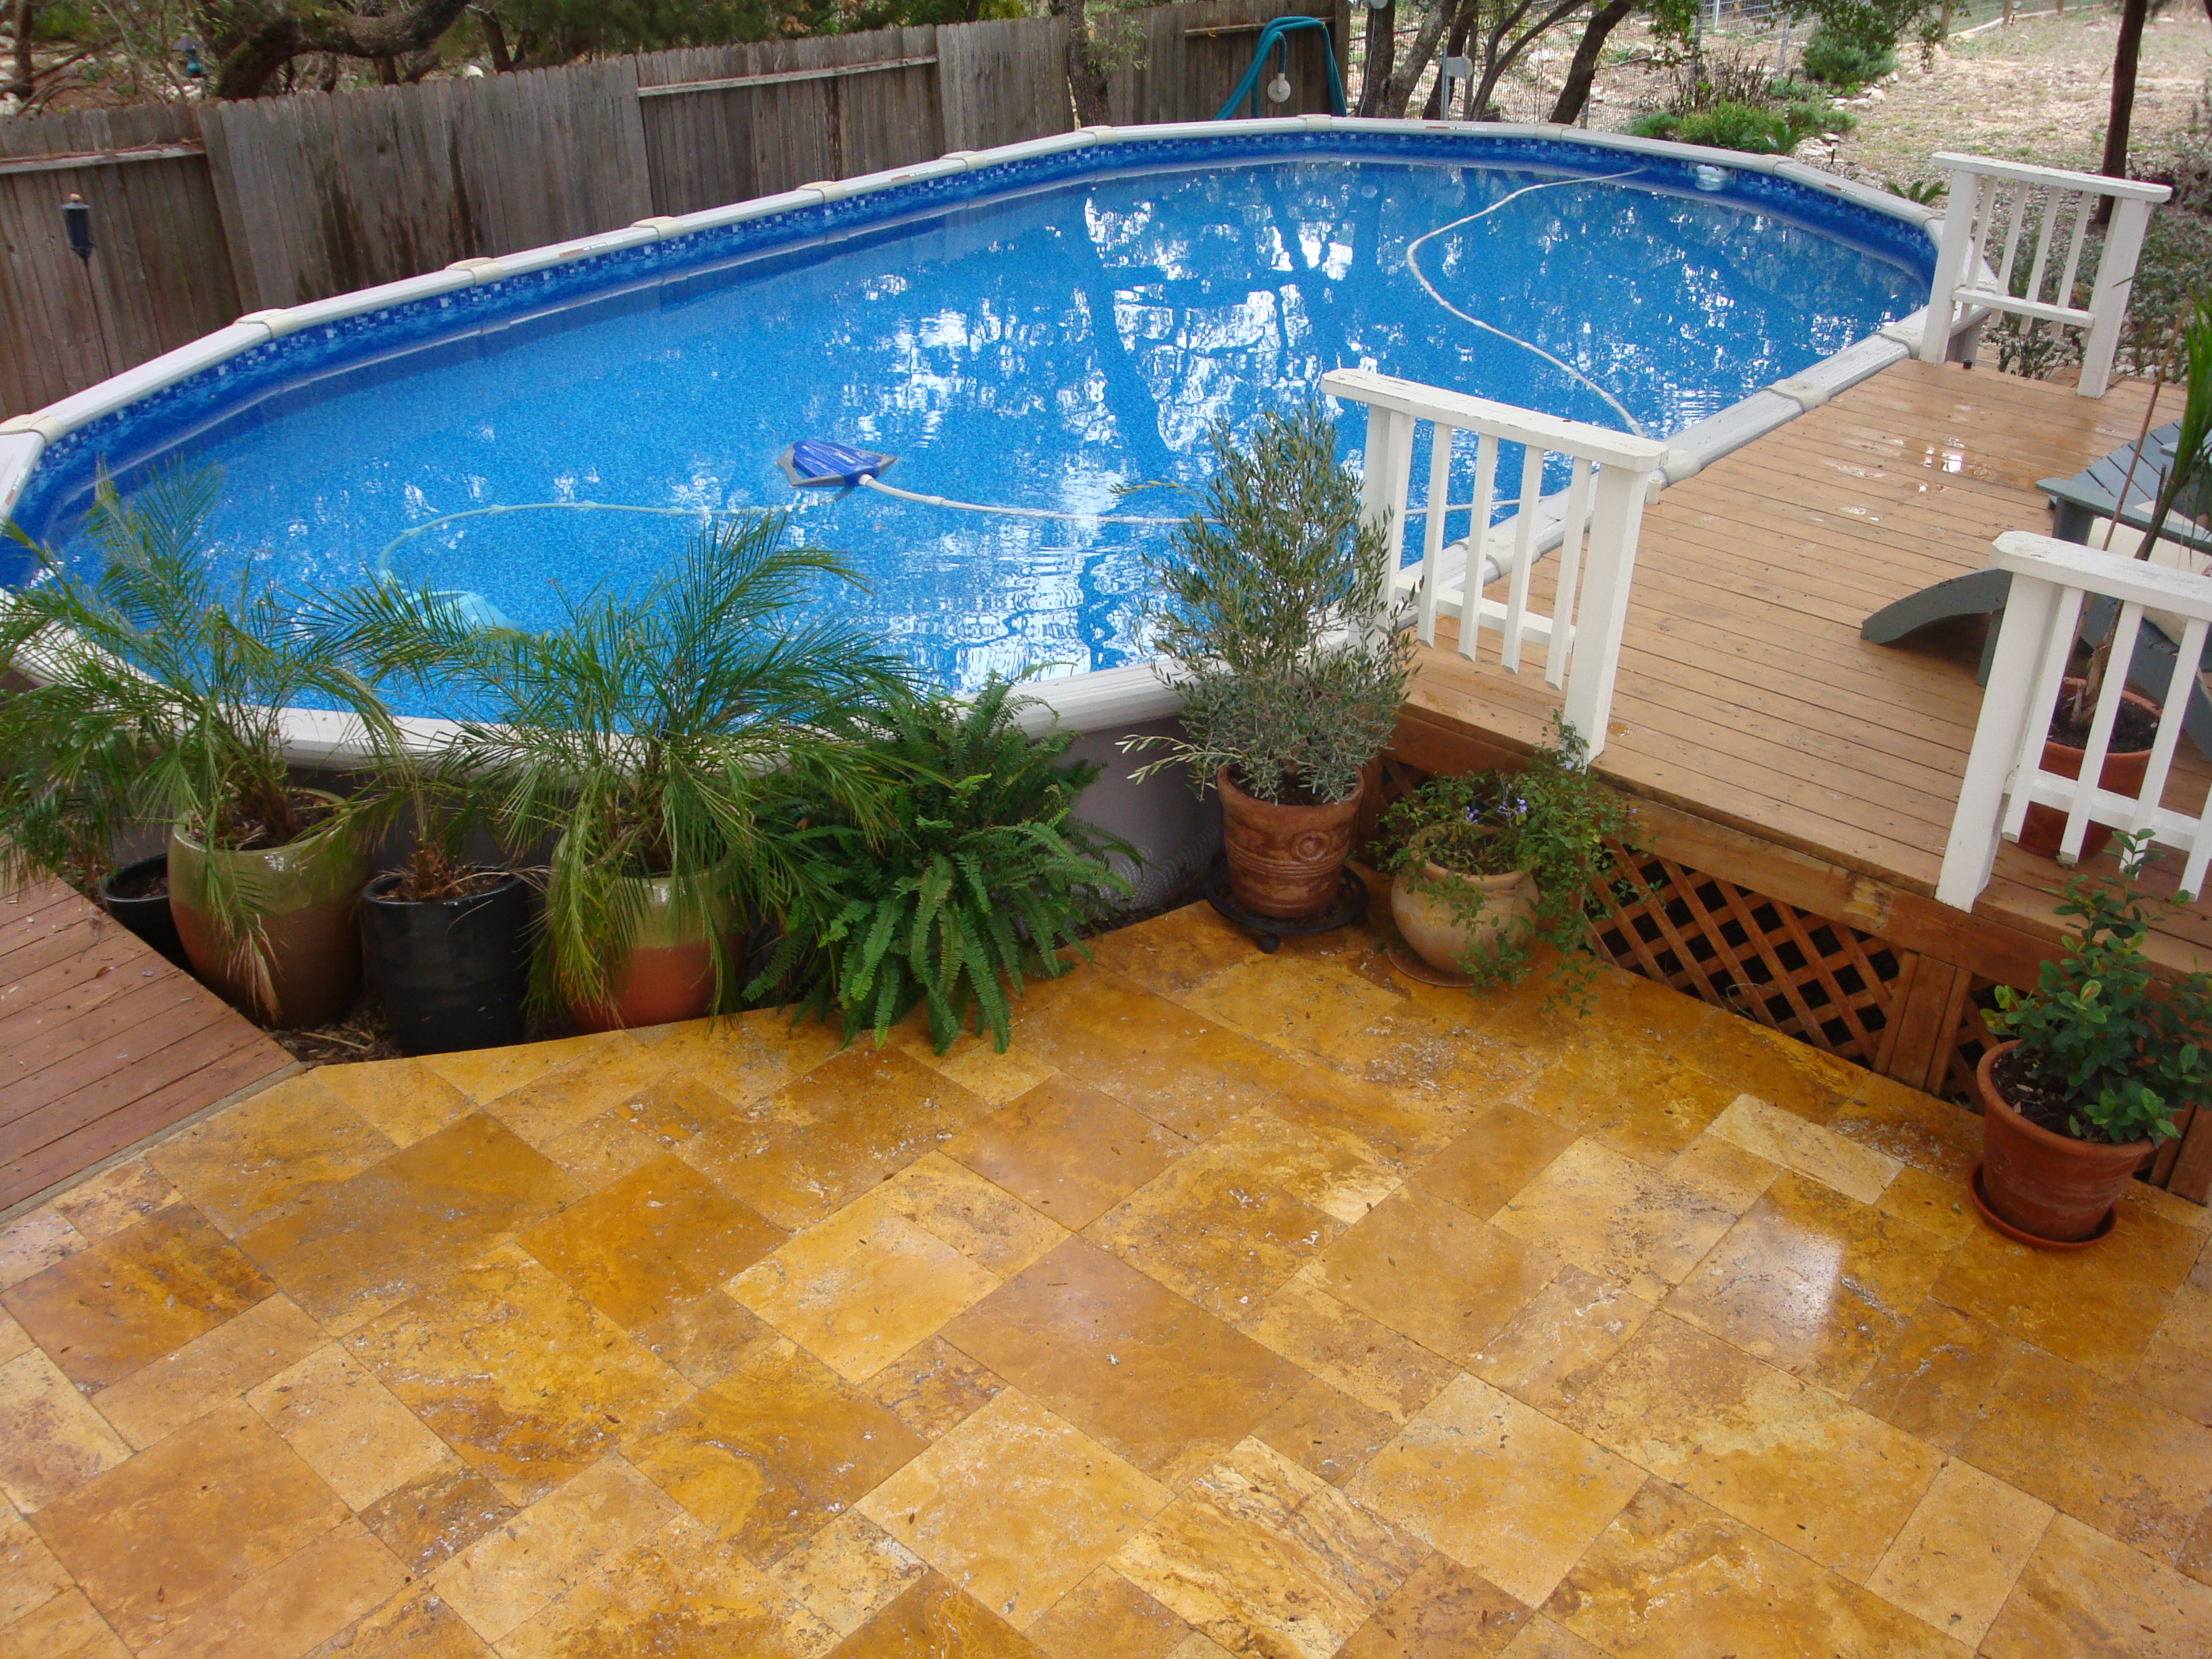 Backyard above ground pool ideas large and beautiful for In ground pool backyard ideas